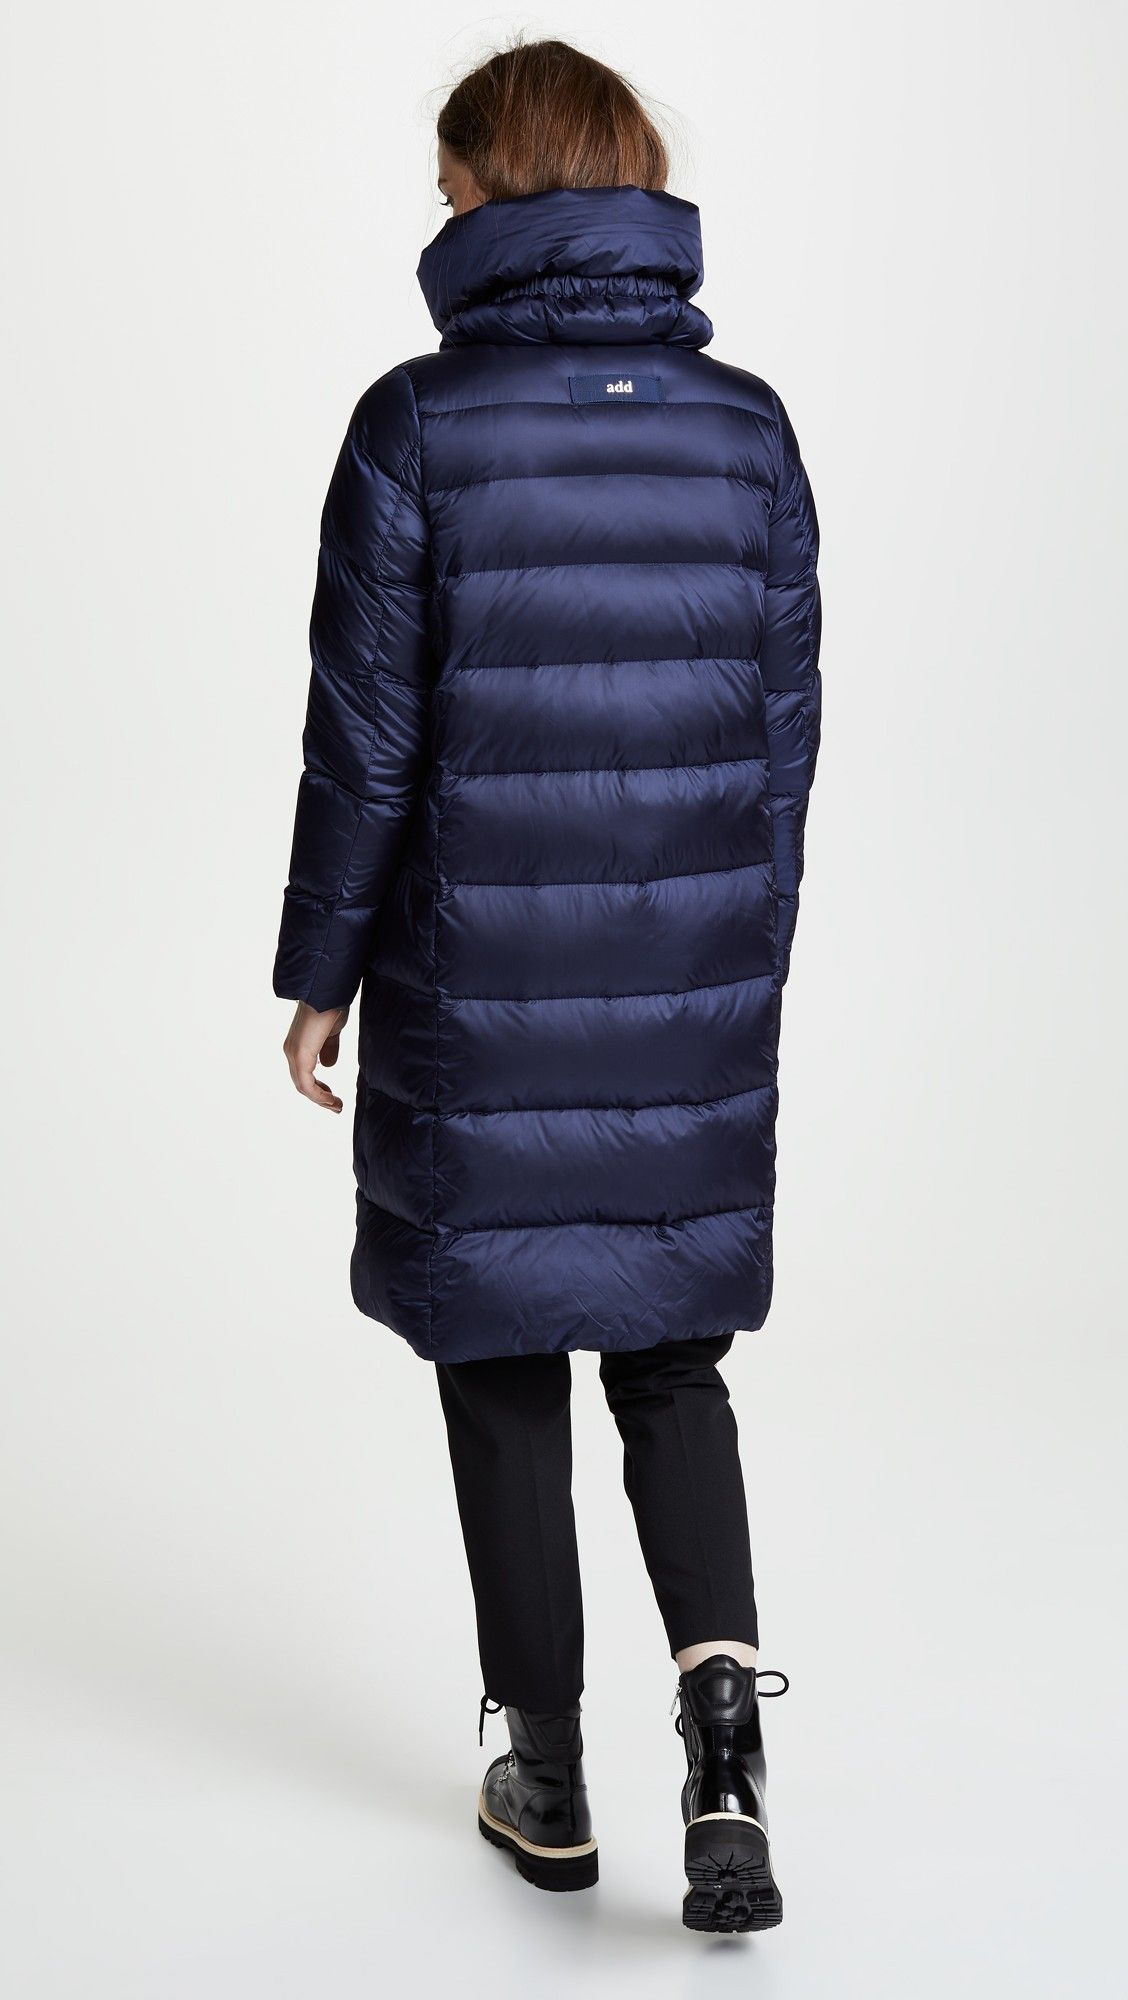 8548f6e332b Long Down Coat i 2019 | :D <3 | Long down coat, Down coat och Coat